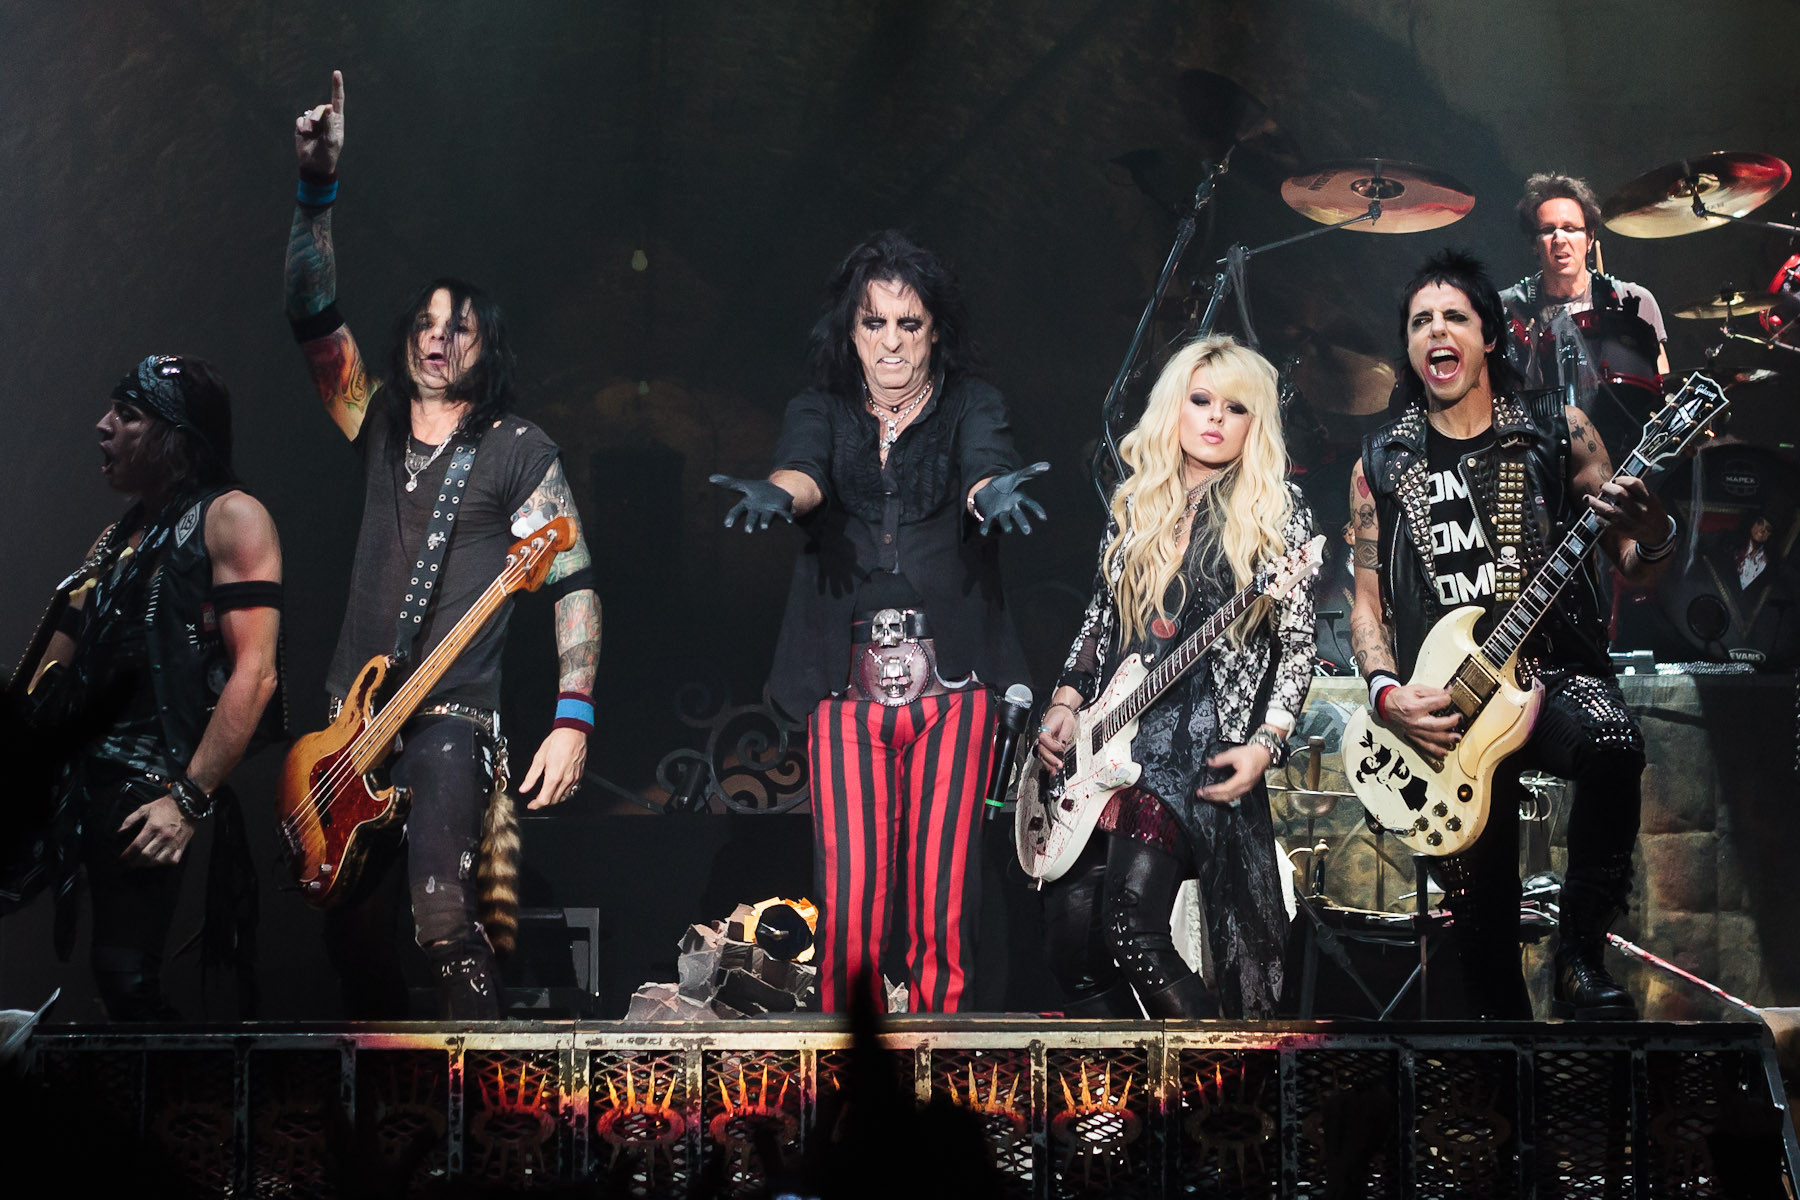 alice cooper and his band performing live during halloween night of horror at wembley arena in london england on oct 28 2012